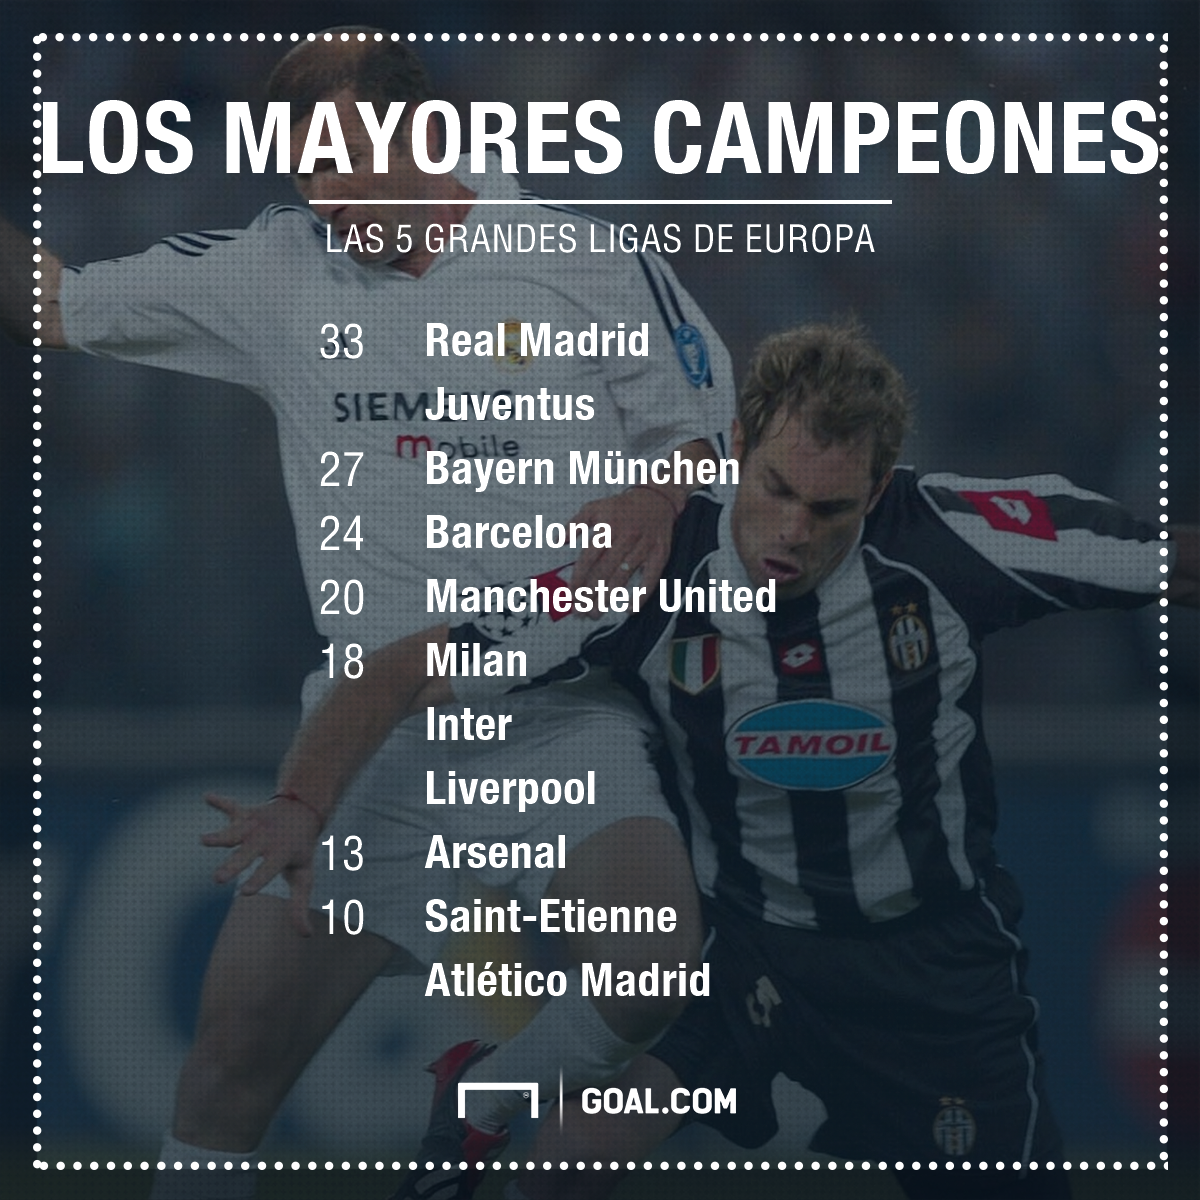 GFX Info The European champions with most league titles